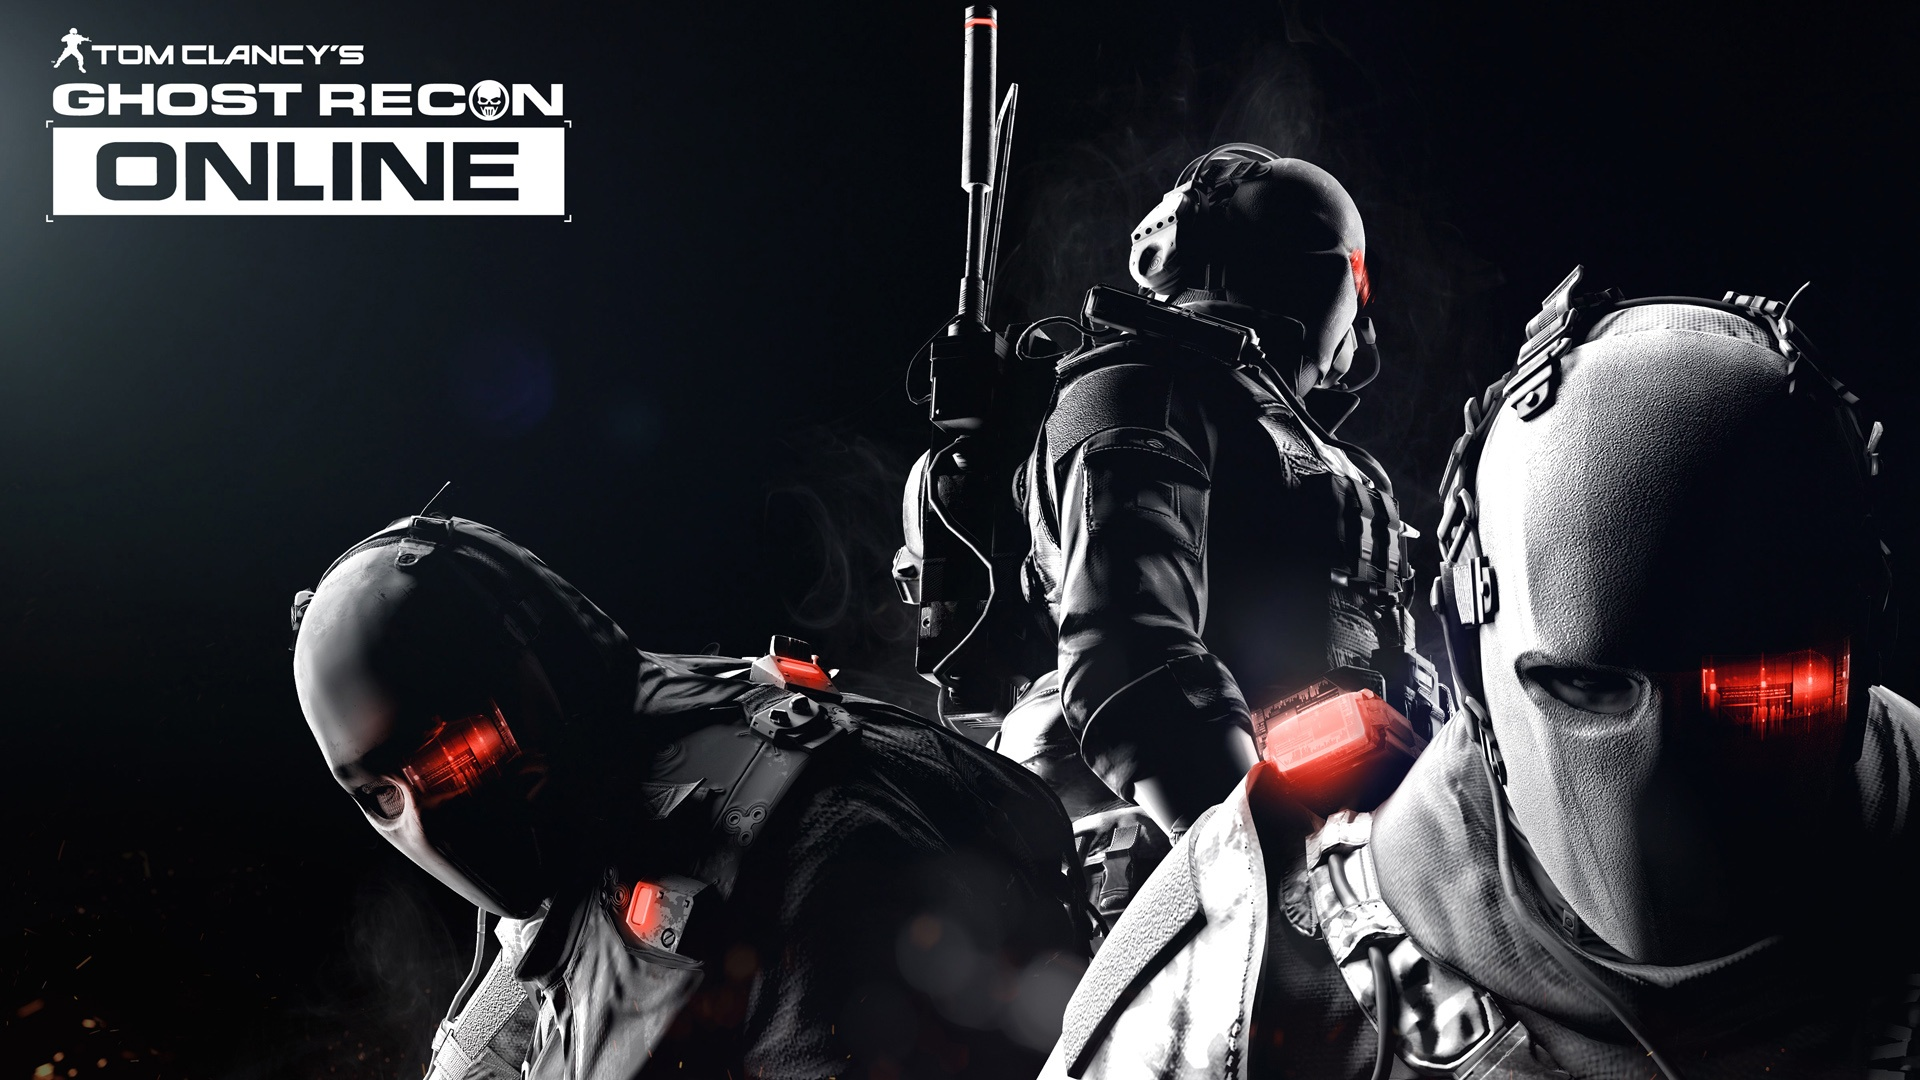 Tom Clancys Ghost Recon Online Wallpapers